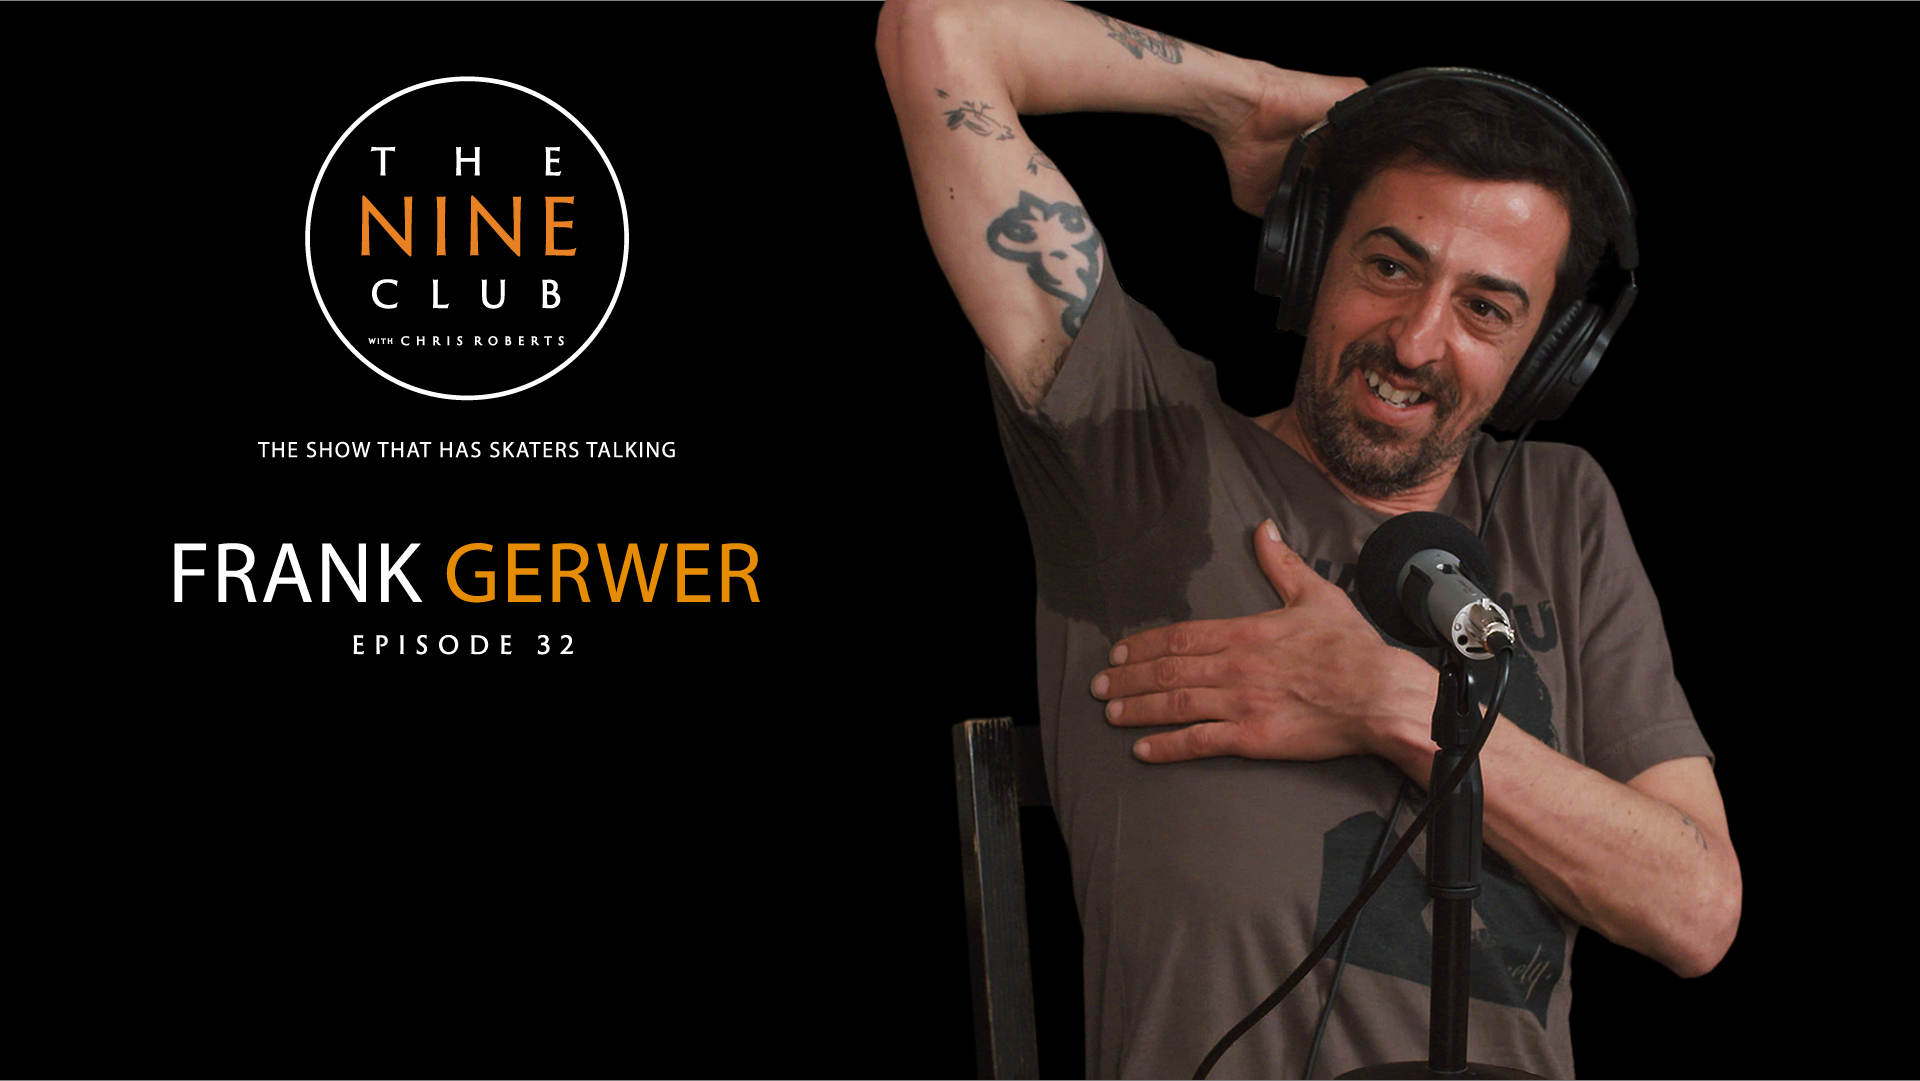 The Nine Club With Chris Roberts | Episode 32 - Frank Gerwer